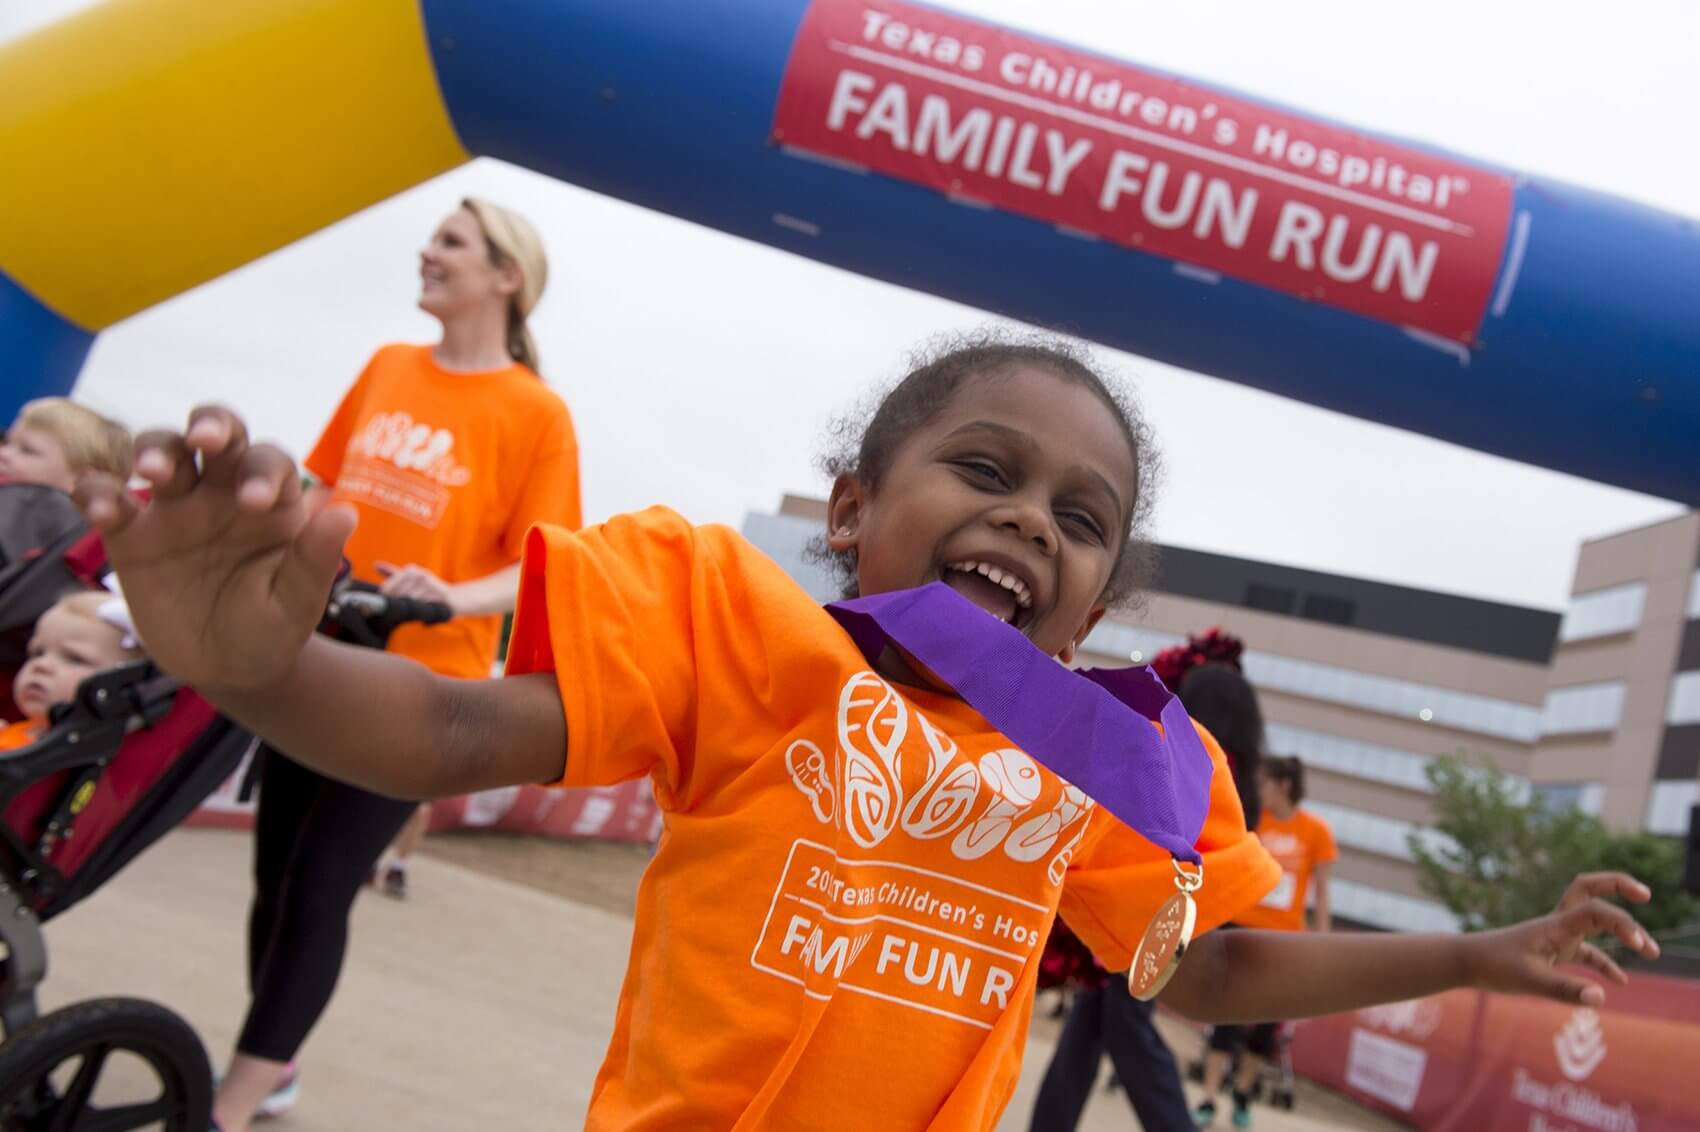 A young participant proudly shows off her medal after completing the race (Credit: Paul Vincent Kuntz/Texas Children's Hospital)